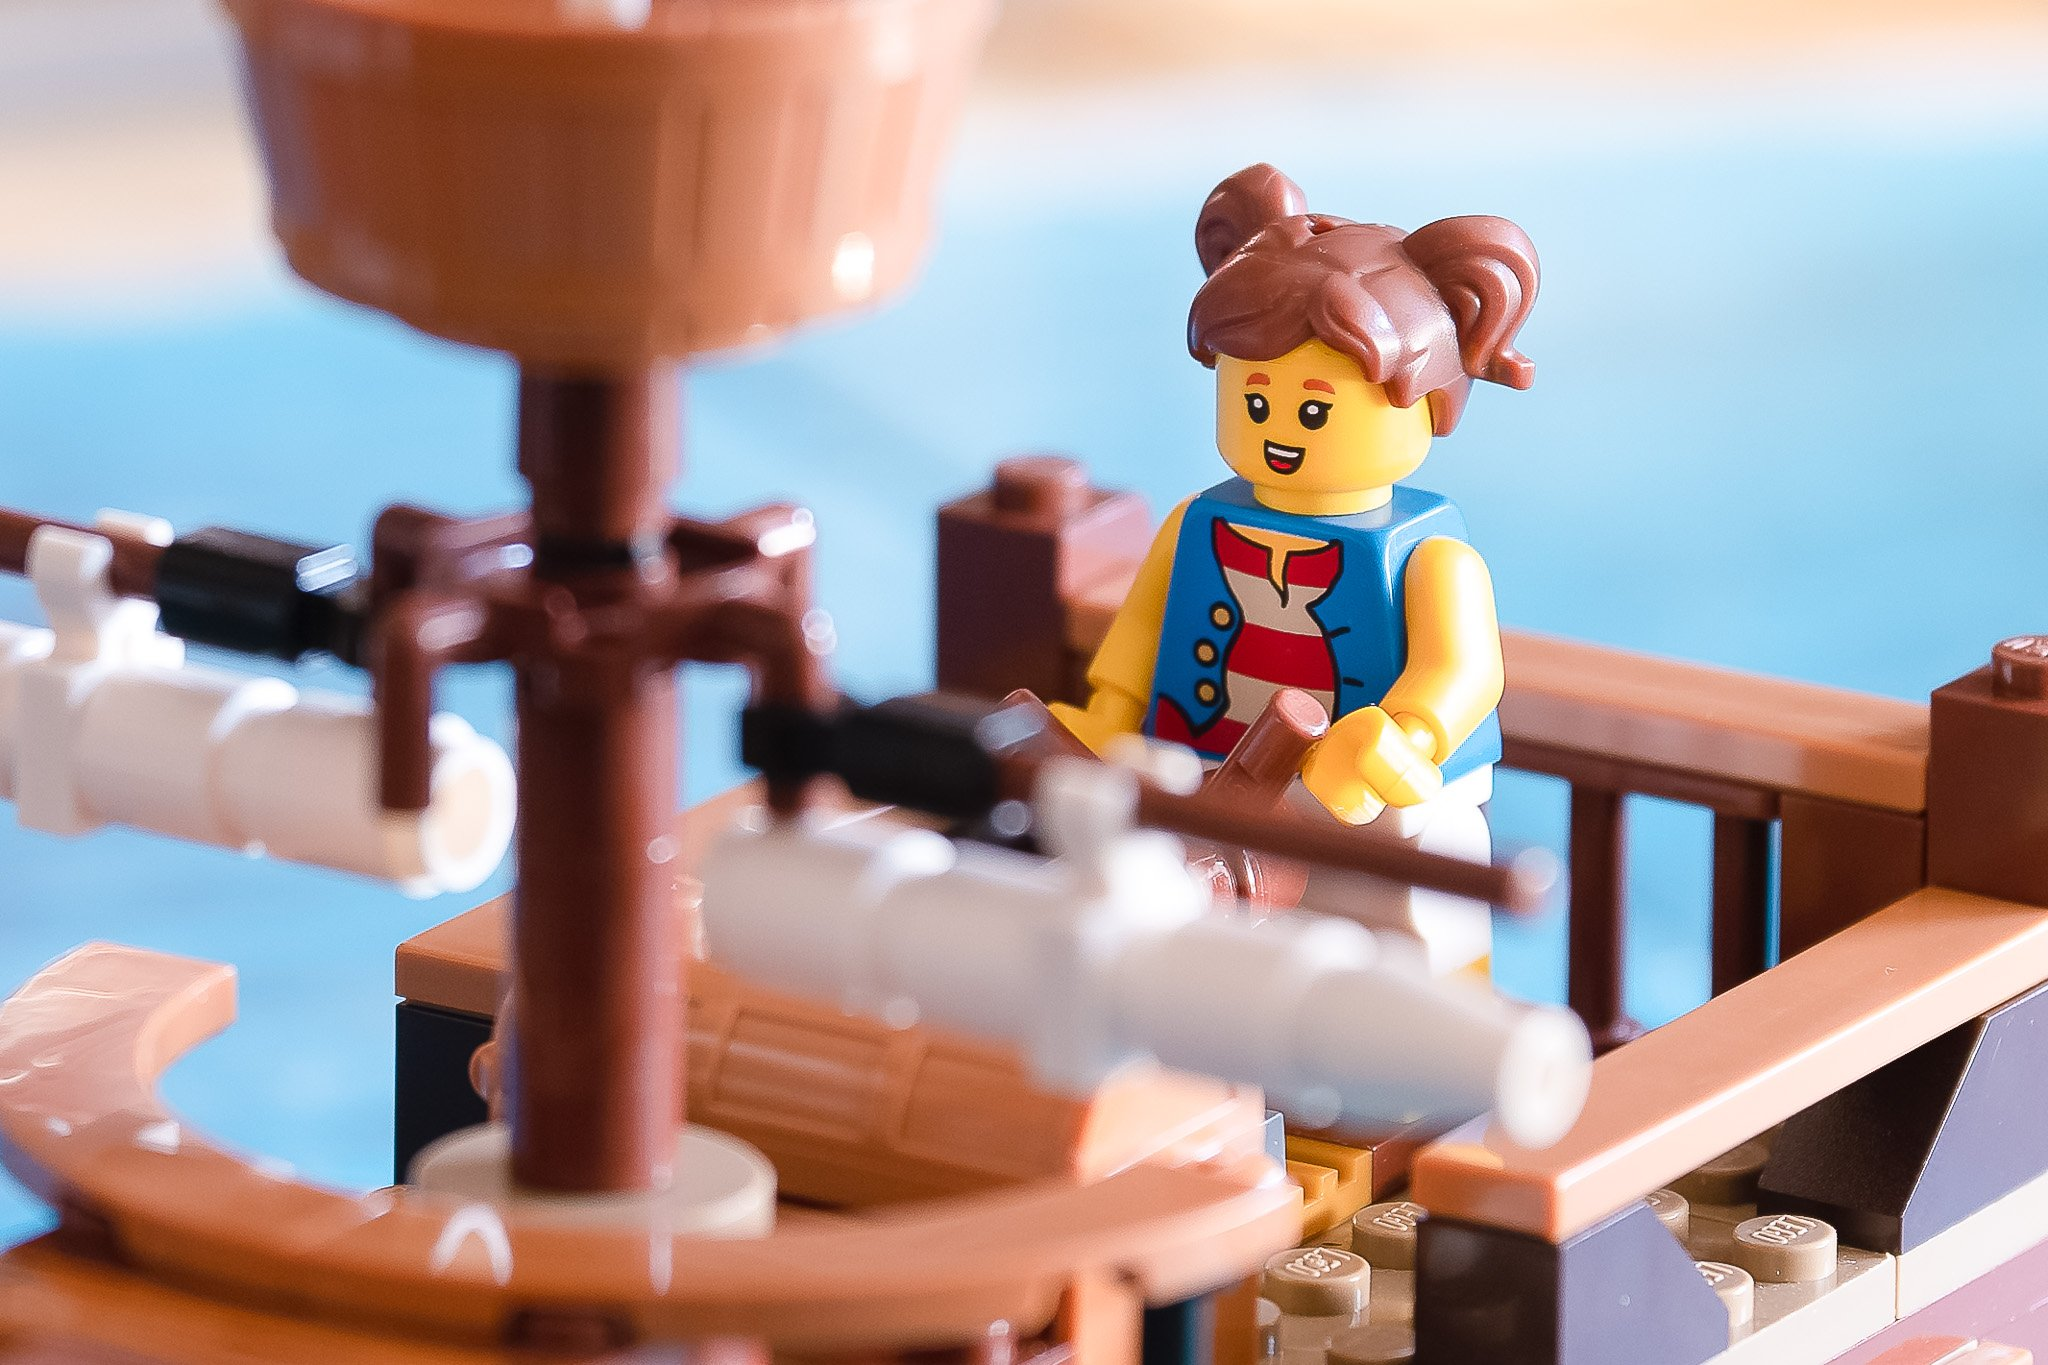 This LEGO knows strength training will help her burn off all that rum.